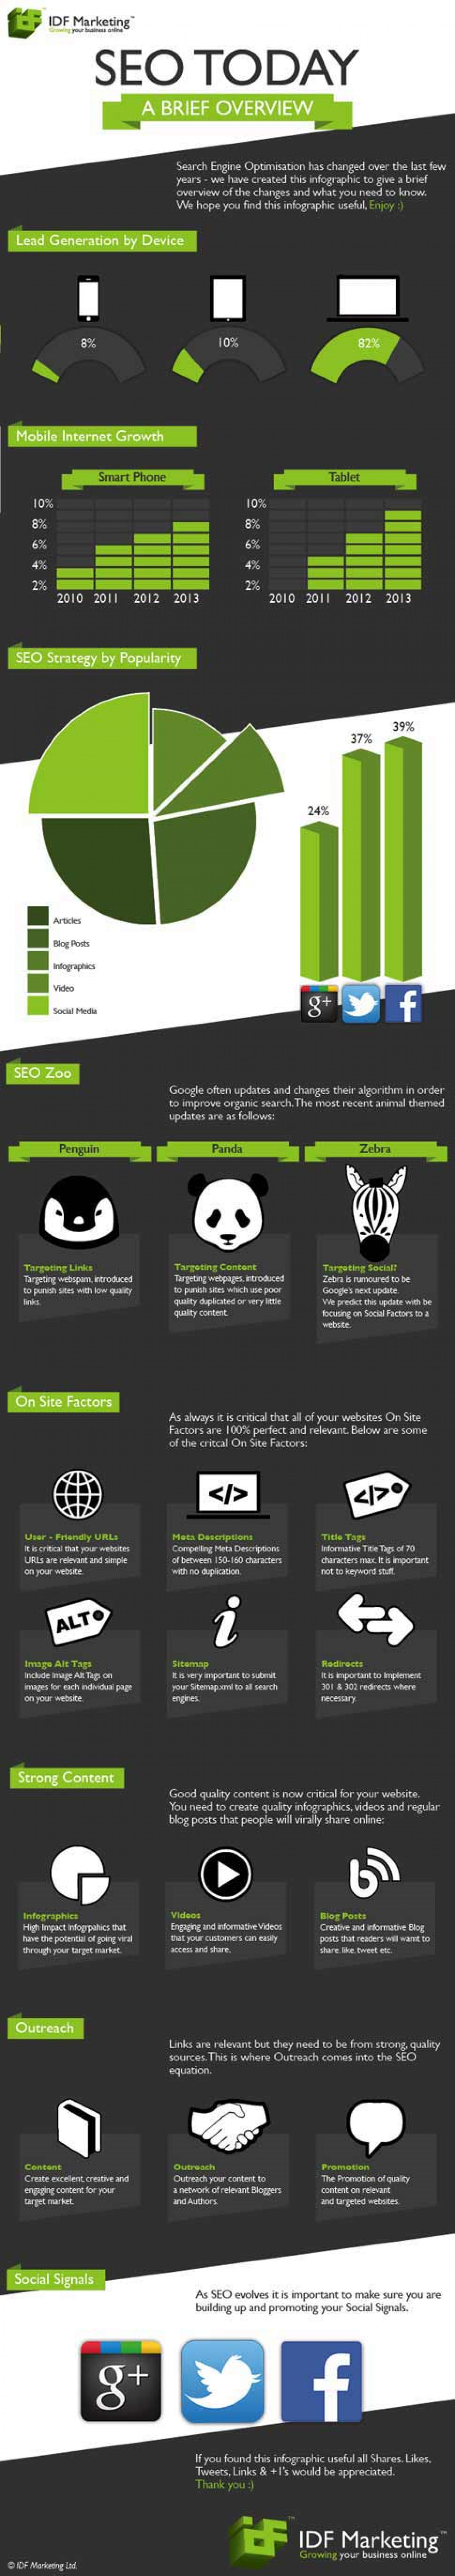 SEO Today - A Brief Overview Infographic